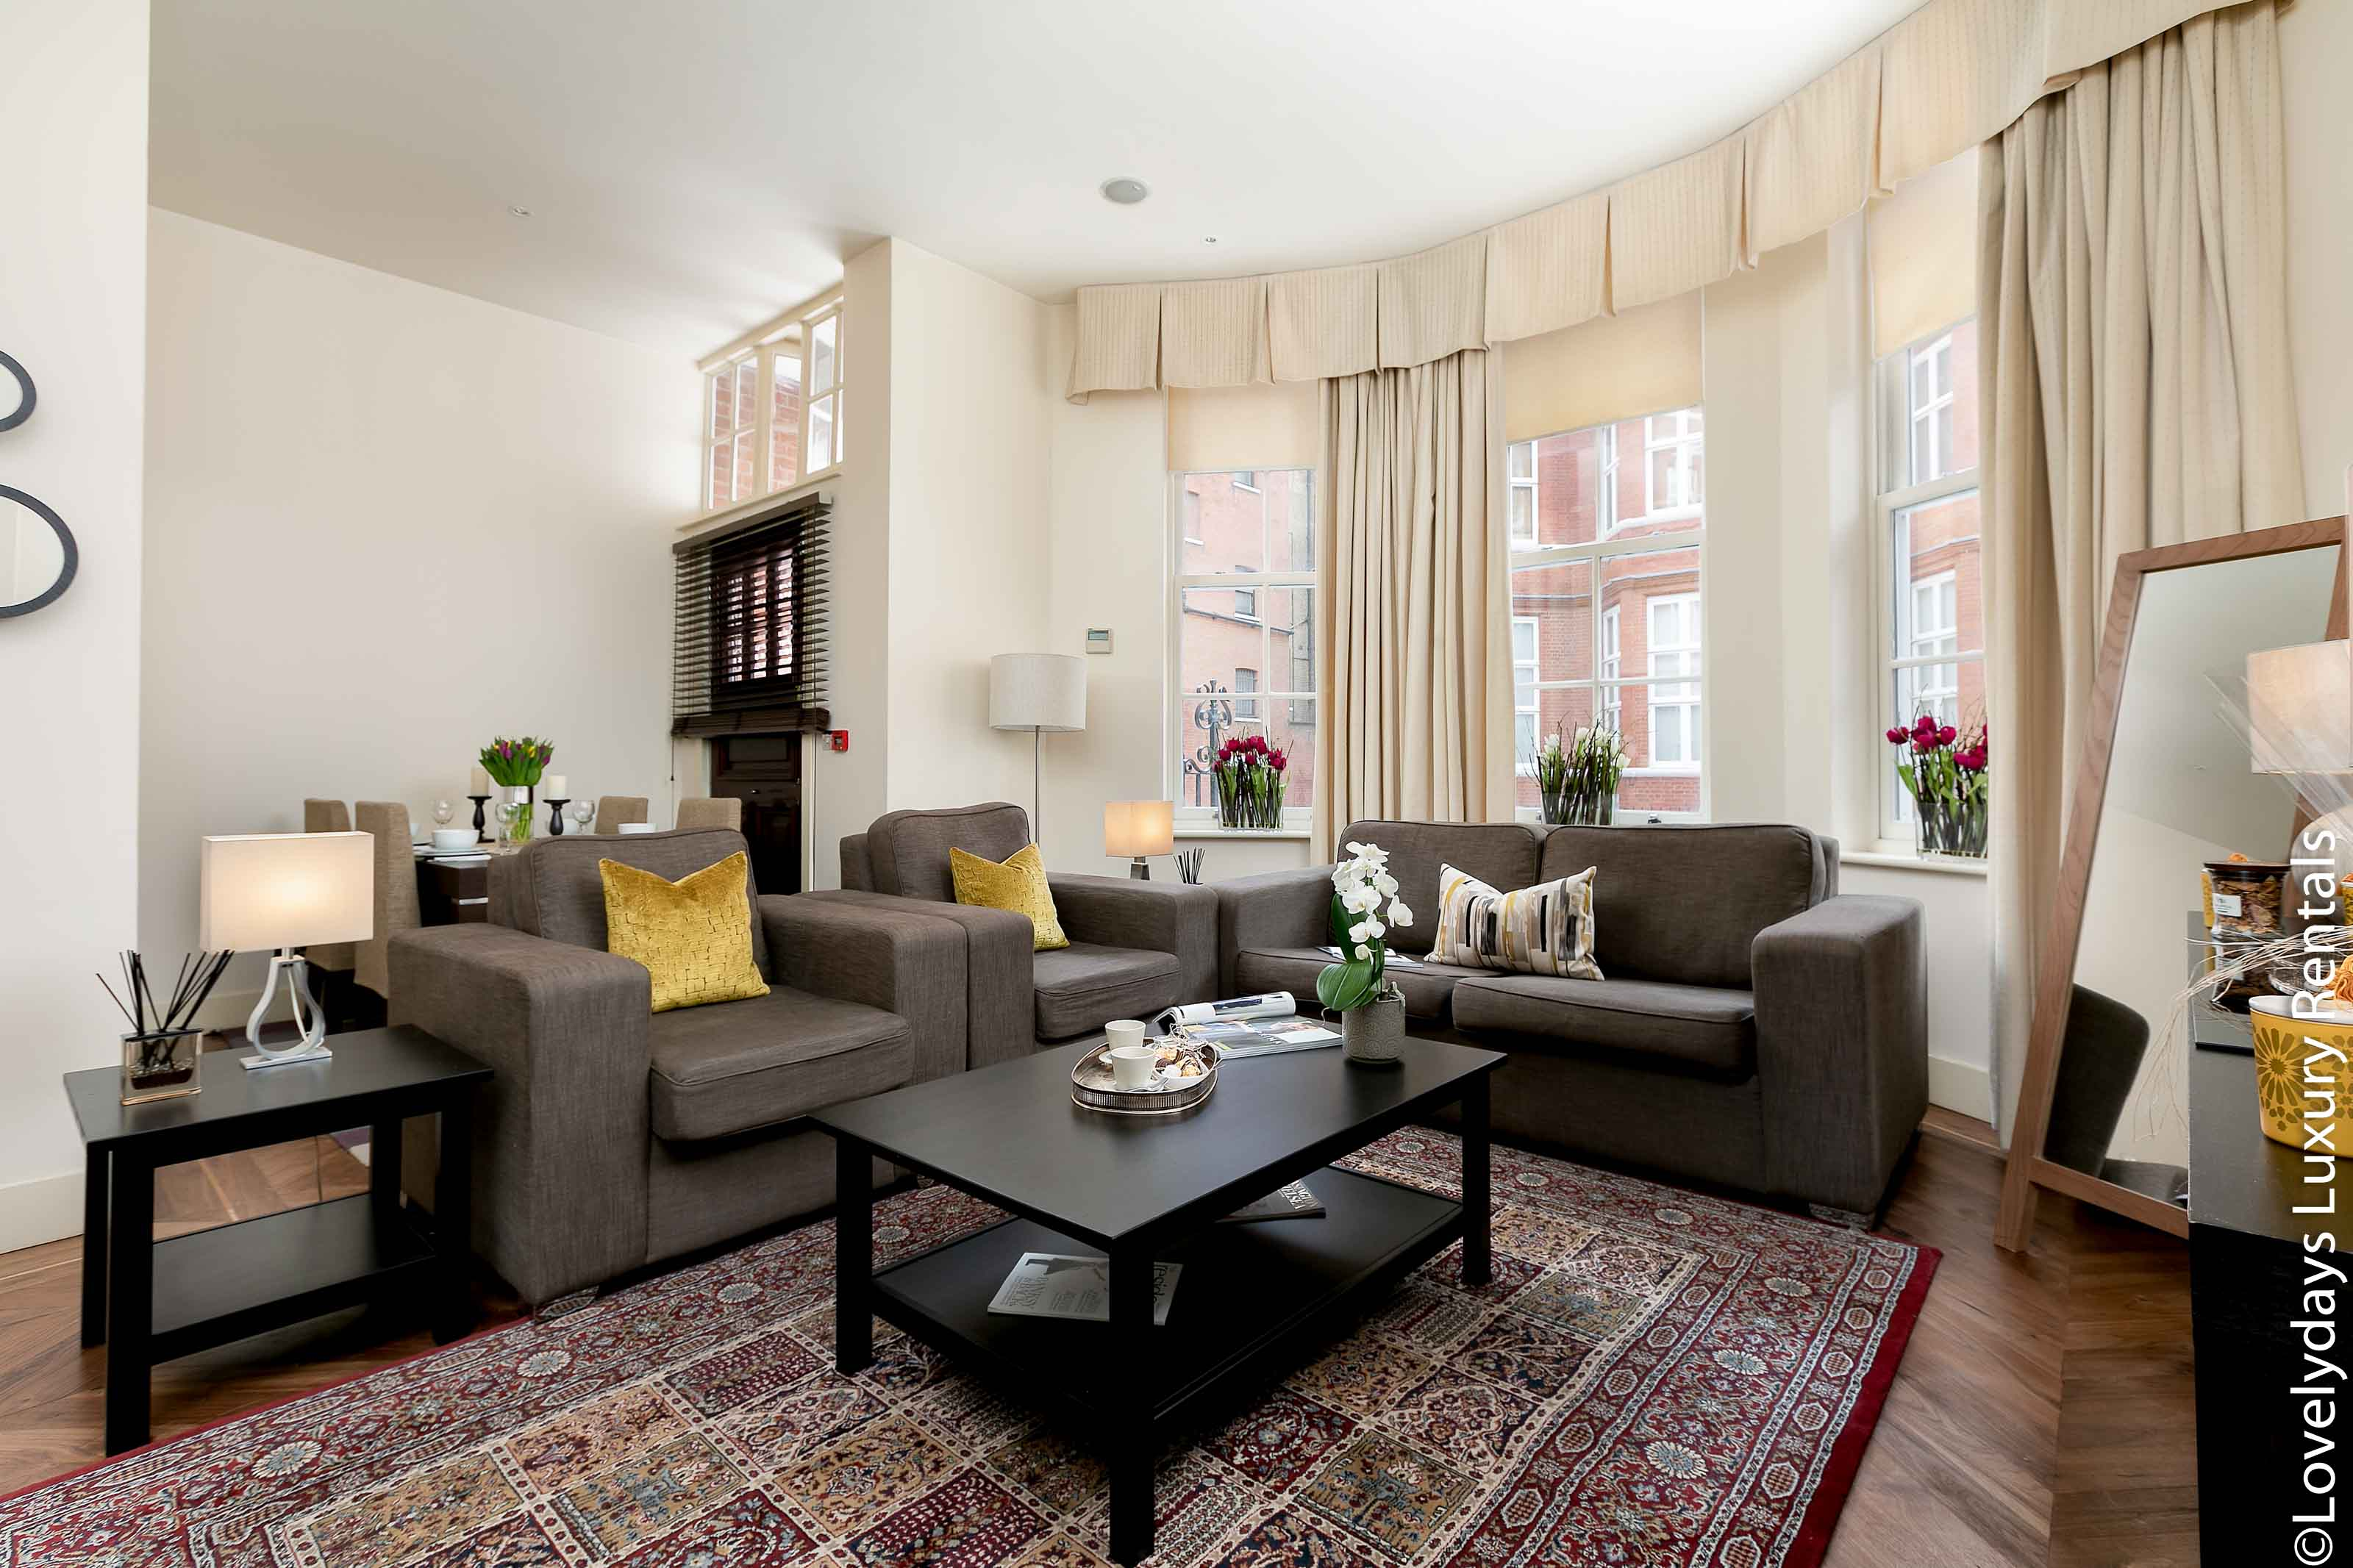 Lovelydays luxury service apartment rental - London - Knightsbridge - Hans Crescent - Partner - 2 bedrooms - 2 bathrooms - Luxury living room - Comfortable sofa - TV system - A/C system - ab38e0fbb59b - Lovelydays